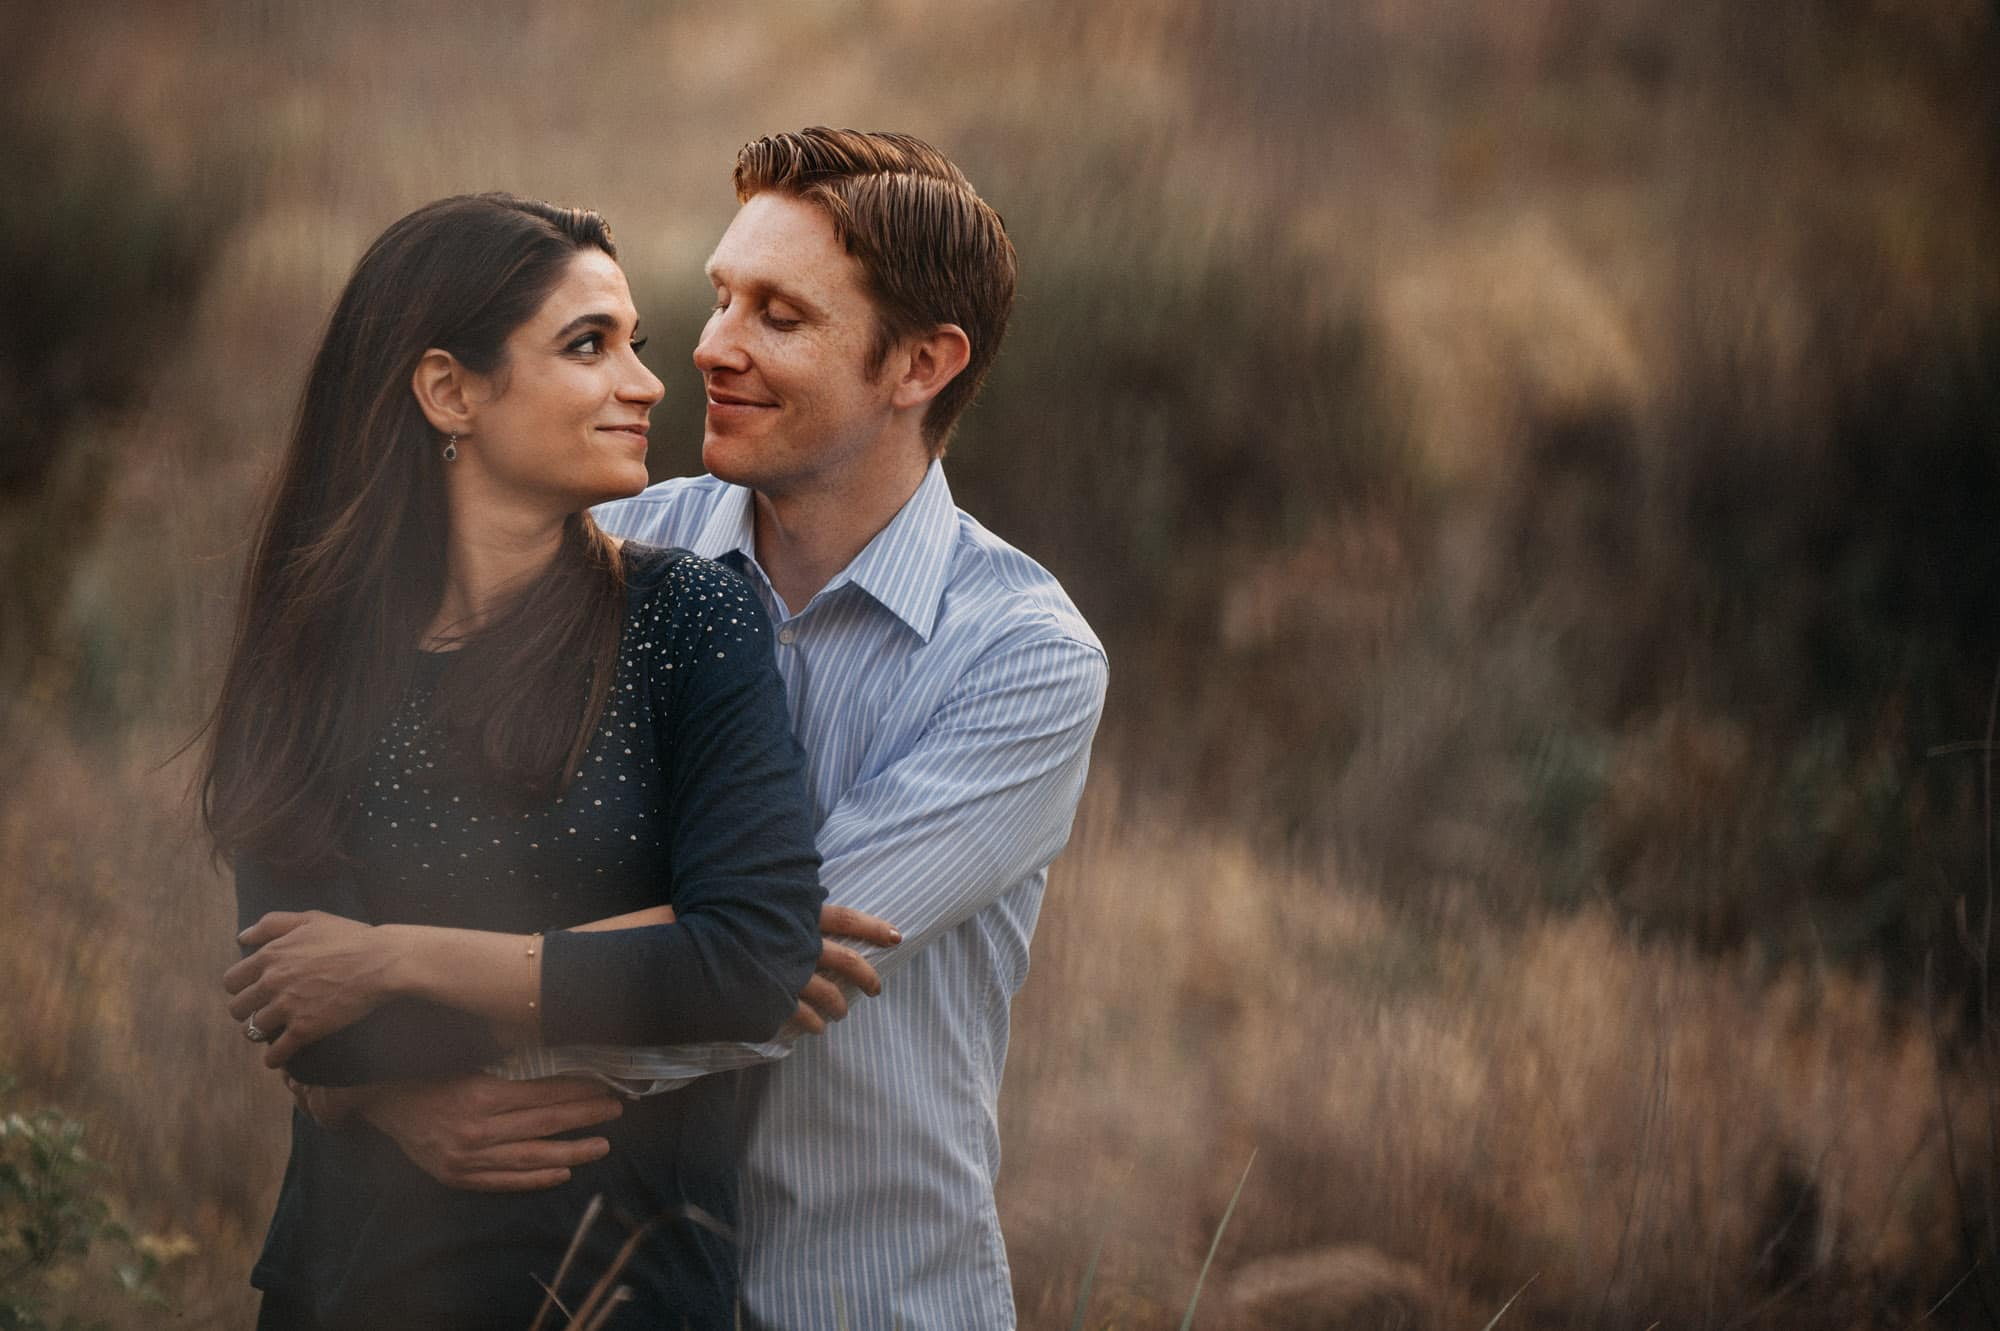 Azzie_Brendon_Malibu_Creek_Beloved_Engagement-13